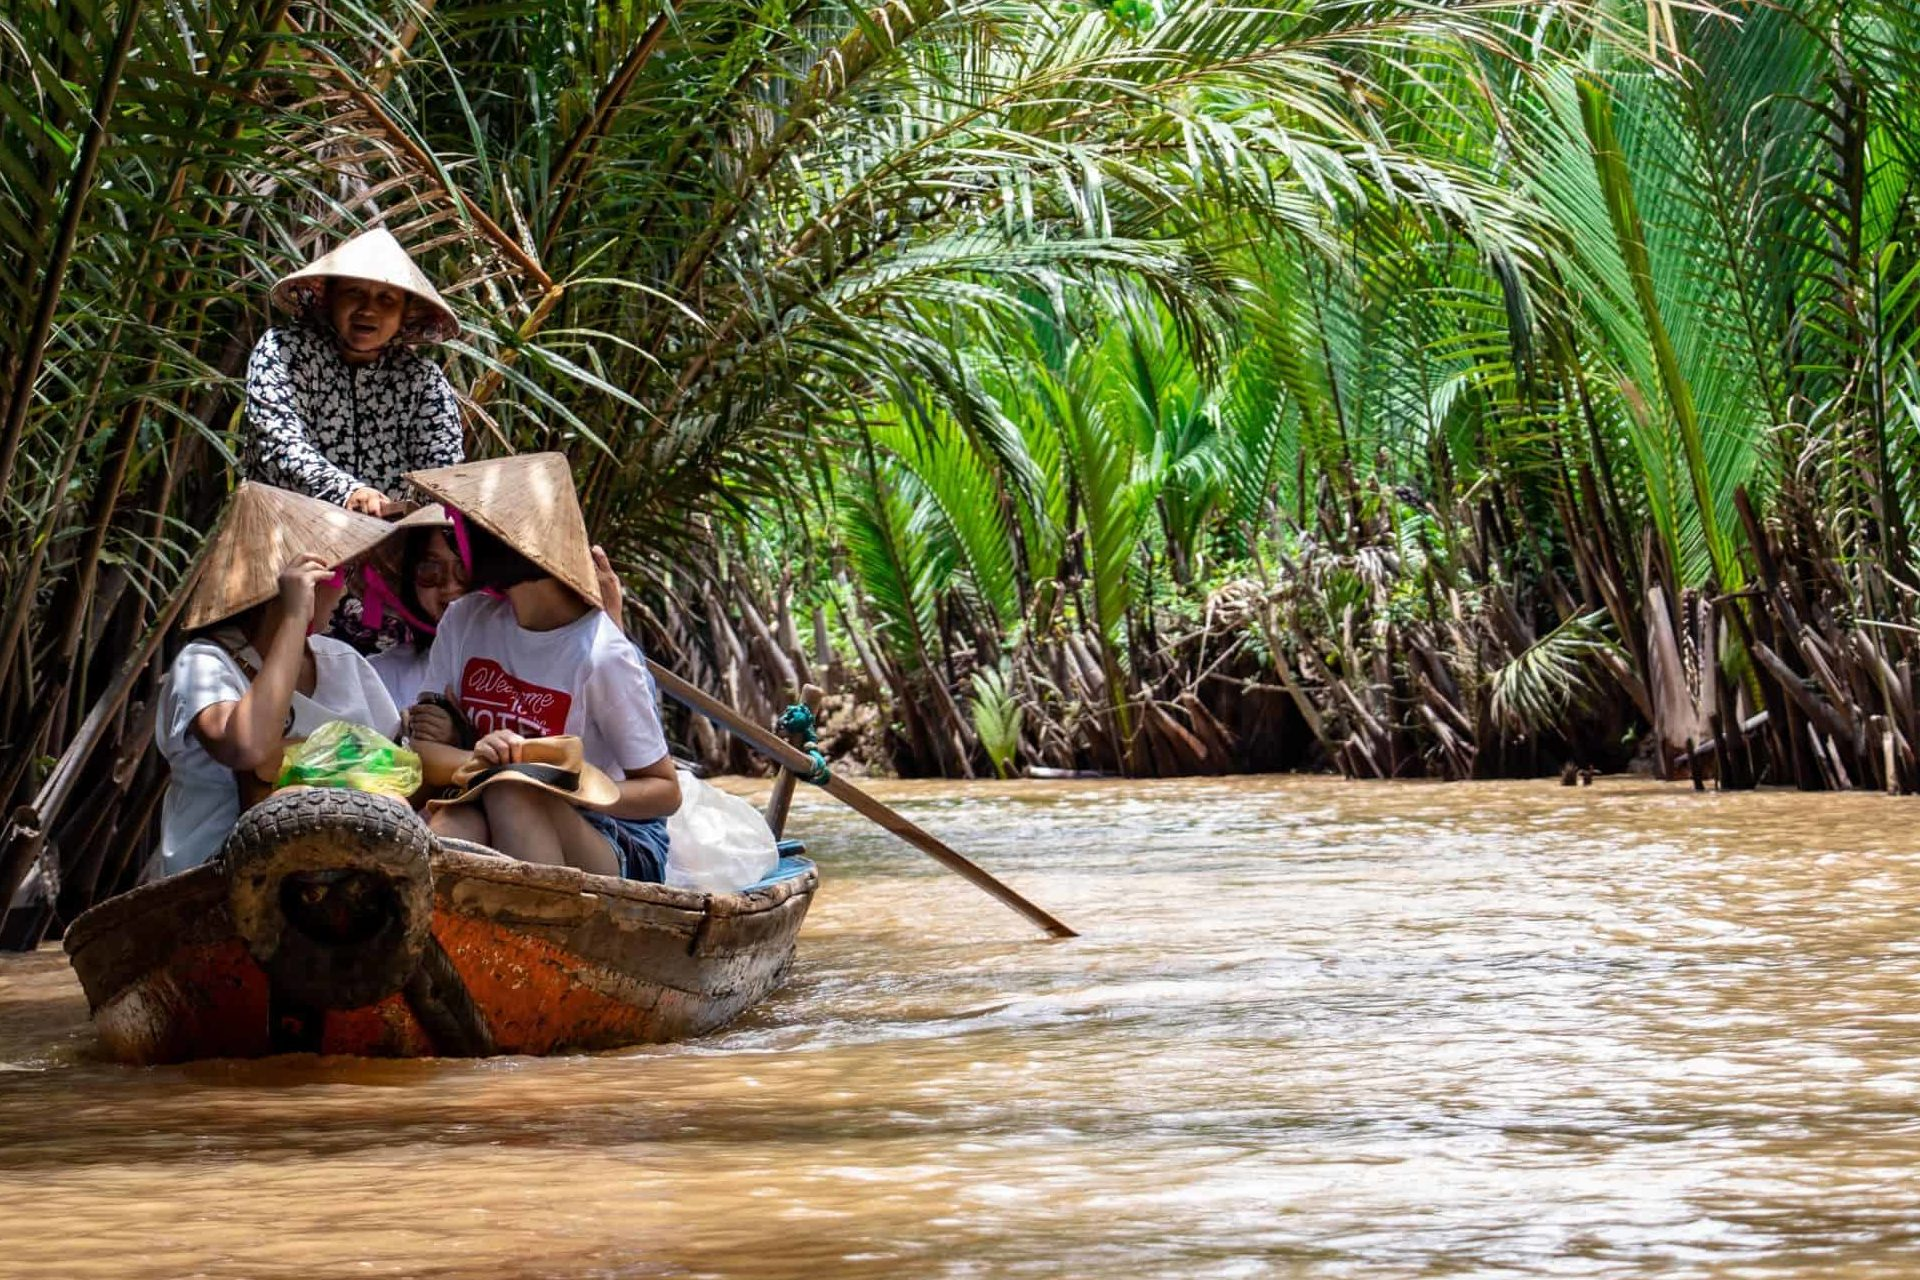 Cruise through Mekong River Delta, which is 10. biggest river in the world. You can get there from Ho Chi Minh city in about 1.5 hour and enjoy cruise like this